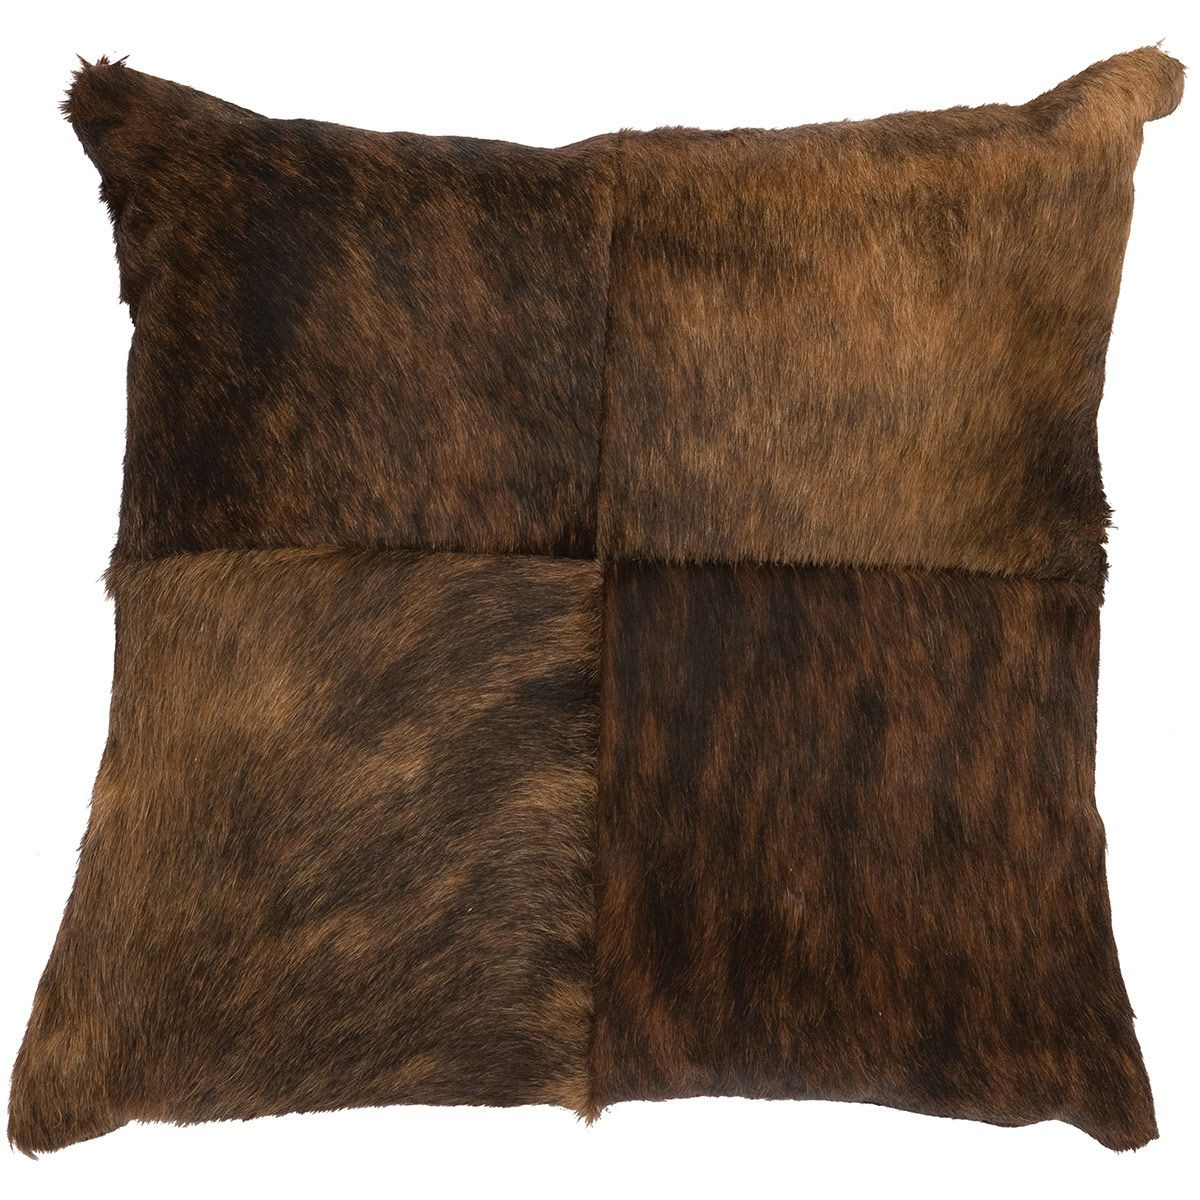 Four Square Dark Brindled Hair on Hide Pillow